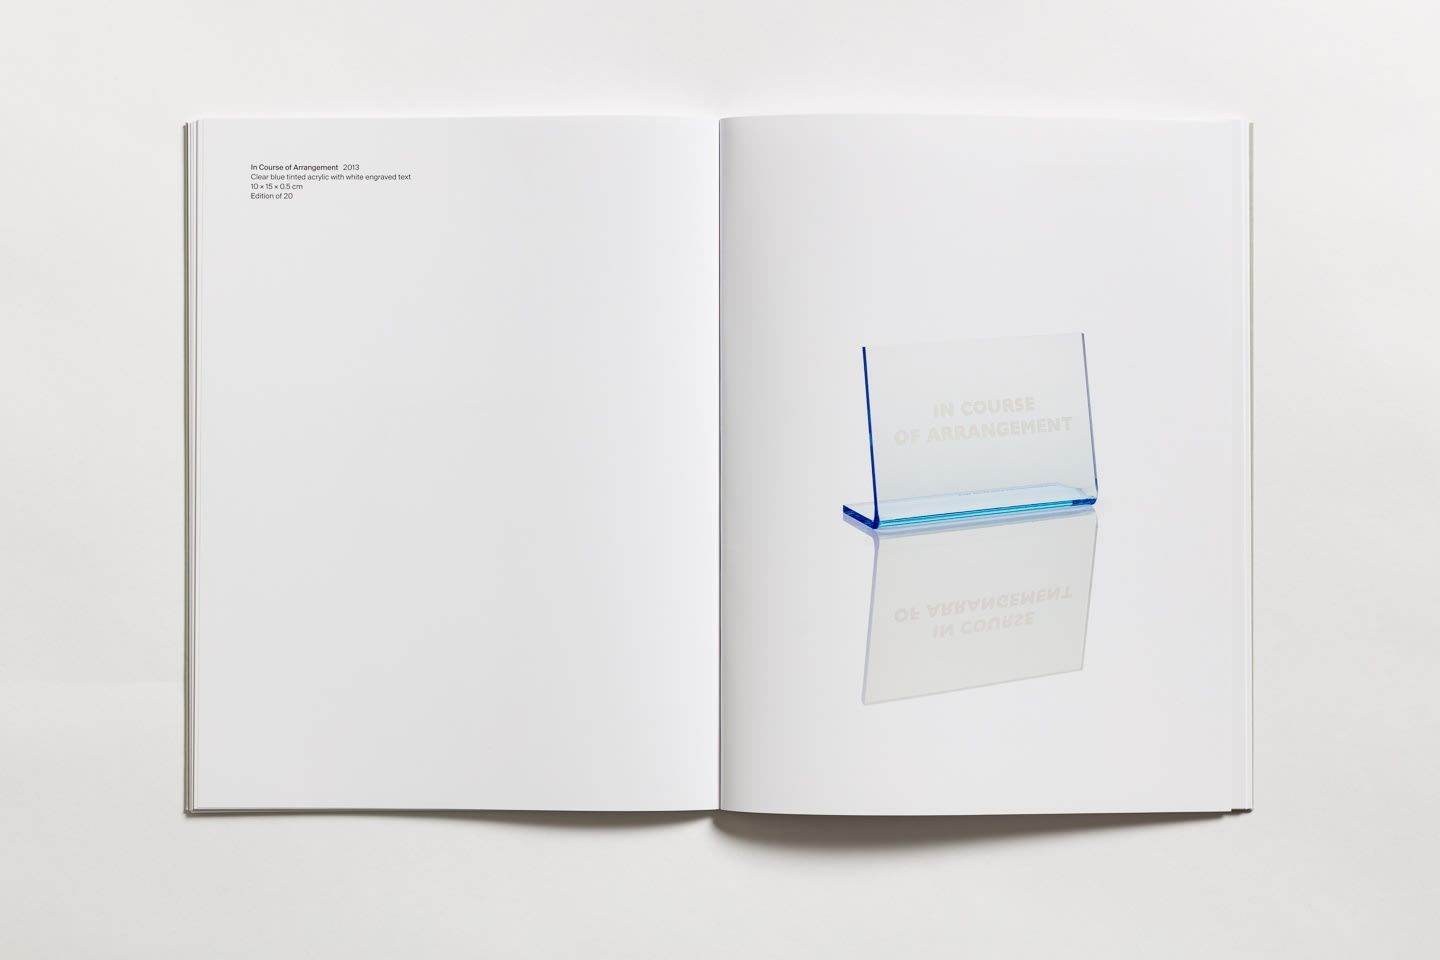 Peter Saville Prints And Multiples / Anna Blessmann And Peter Saville Signs / 28 November 2019 - 18 January 2020